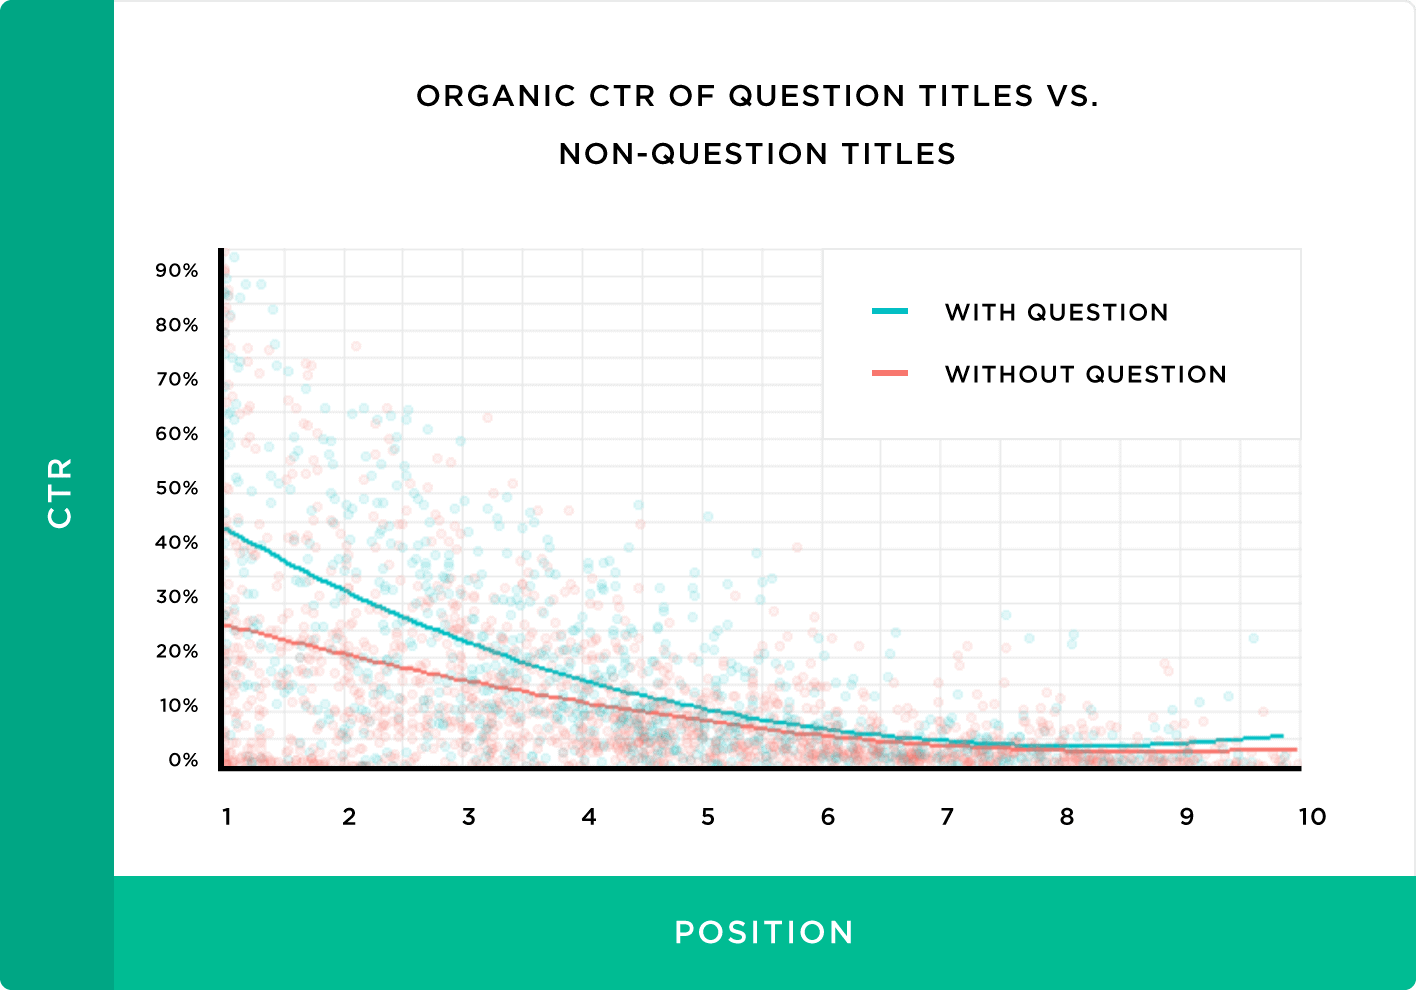 Organic CTR of question titles .vs. Non-question titles